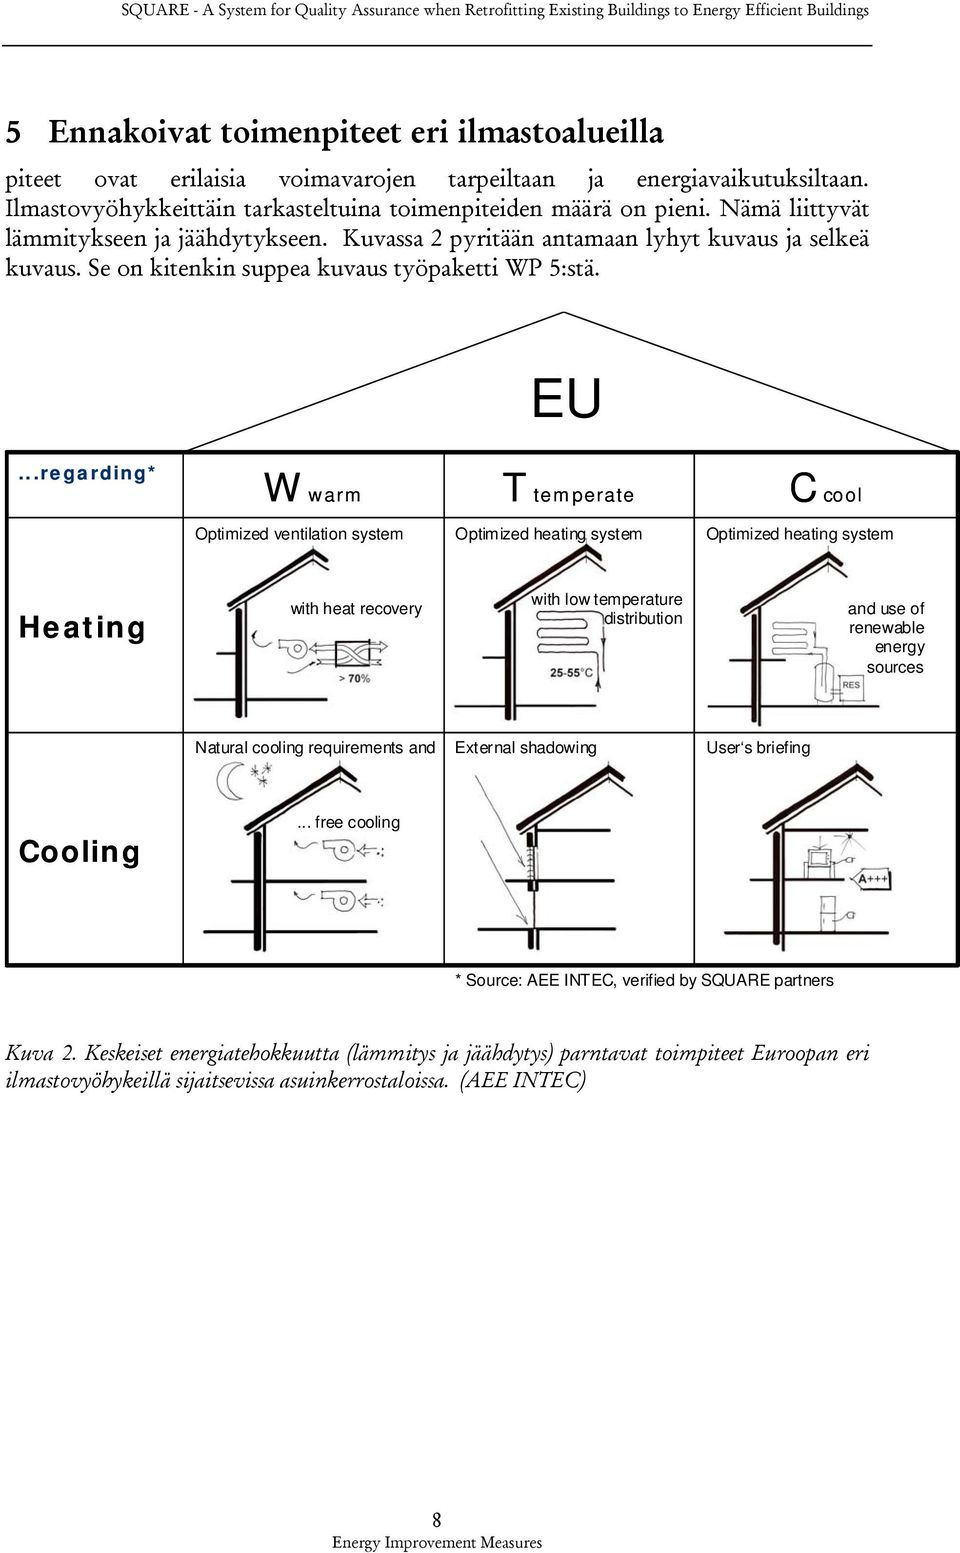 ..regarding* W warm T temperate C cool Optimized ventilation system Optimized heating system Optimized heating system Heating with heat recovery with low temperature distribution and use of renewable